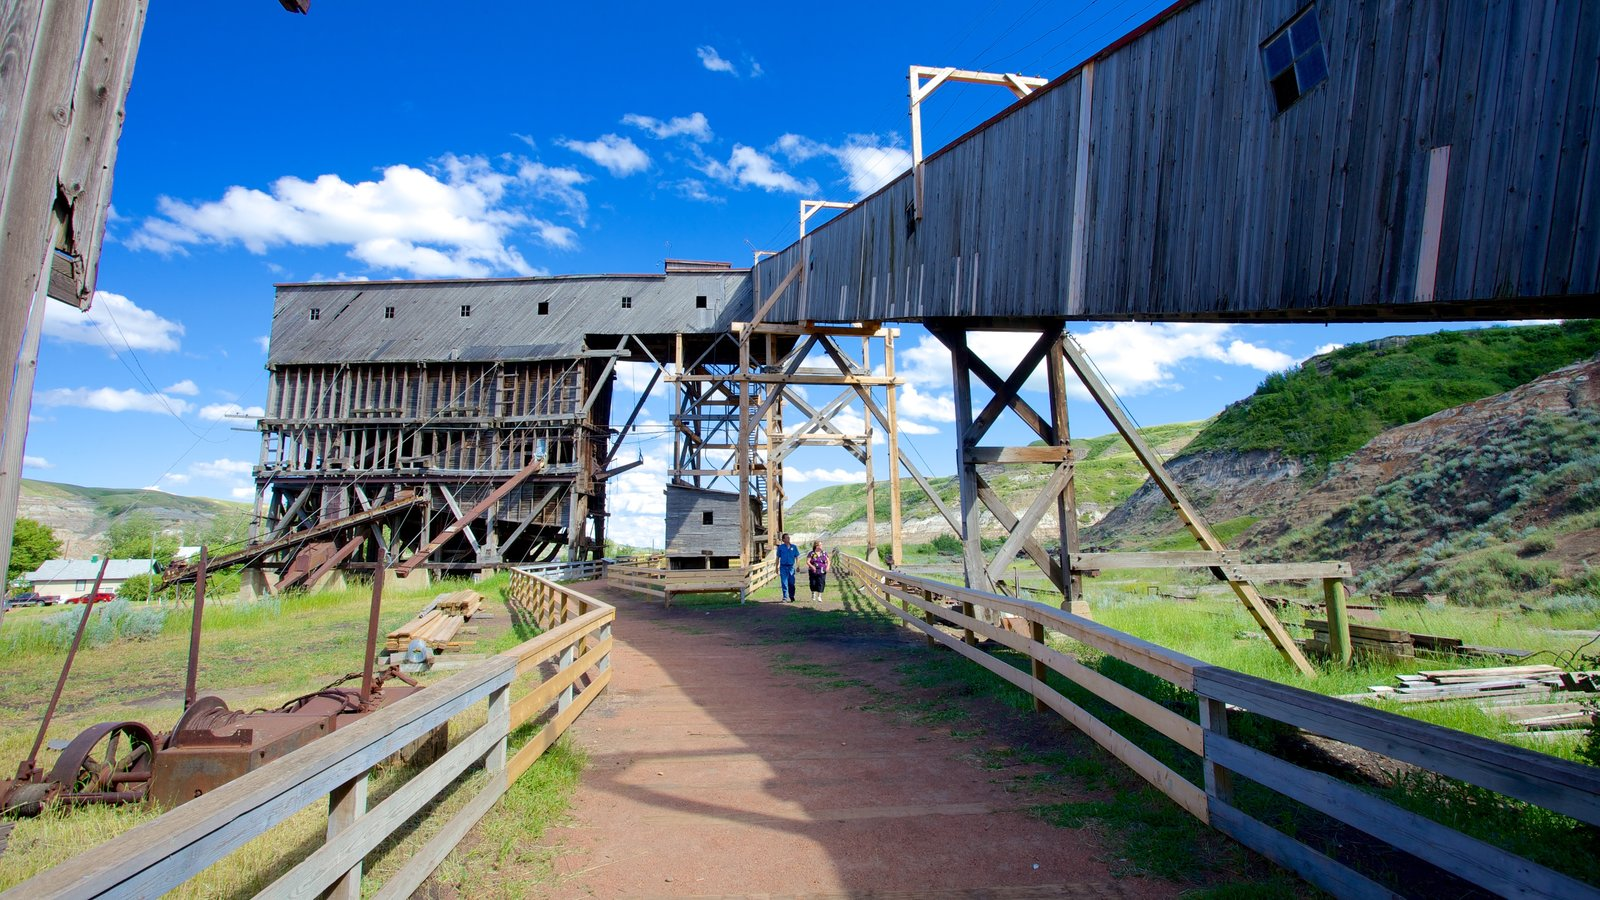 Atlas Coal Mine National Historic Site showing tranquil scenes and industrial elements